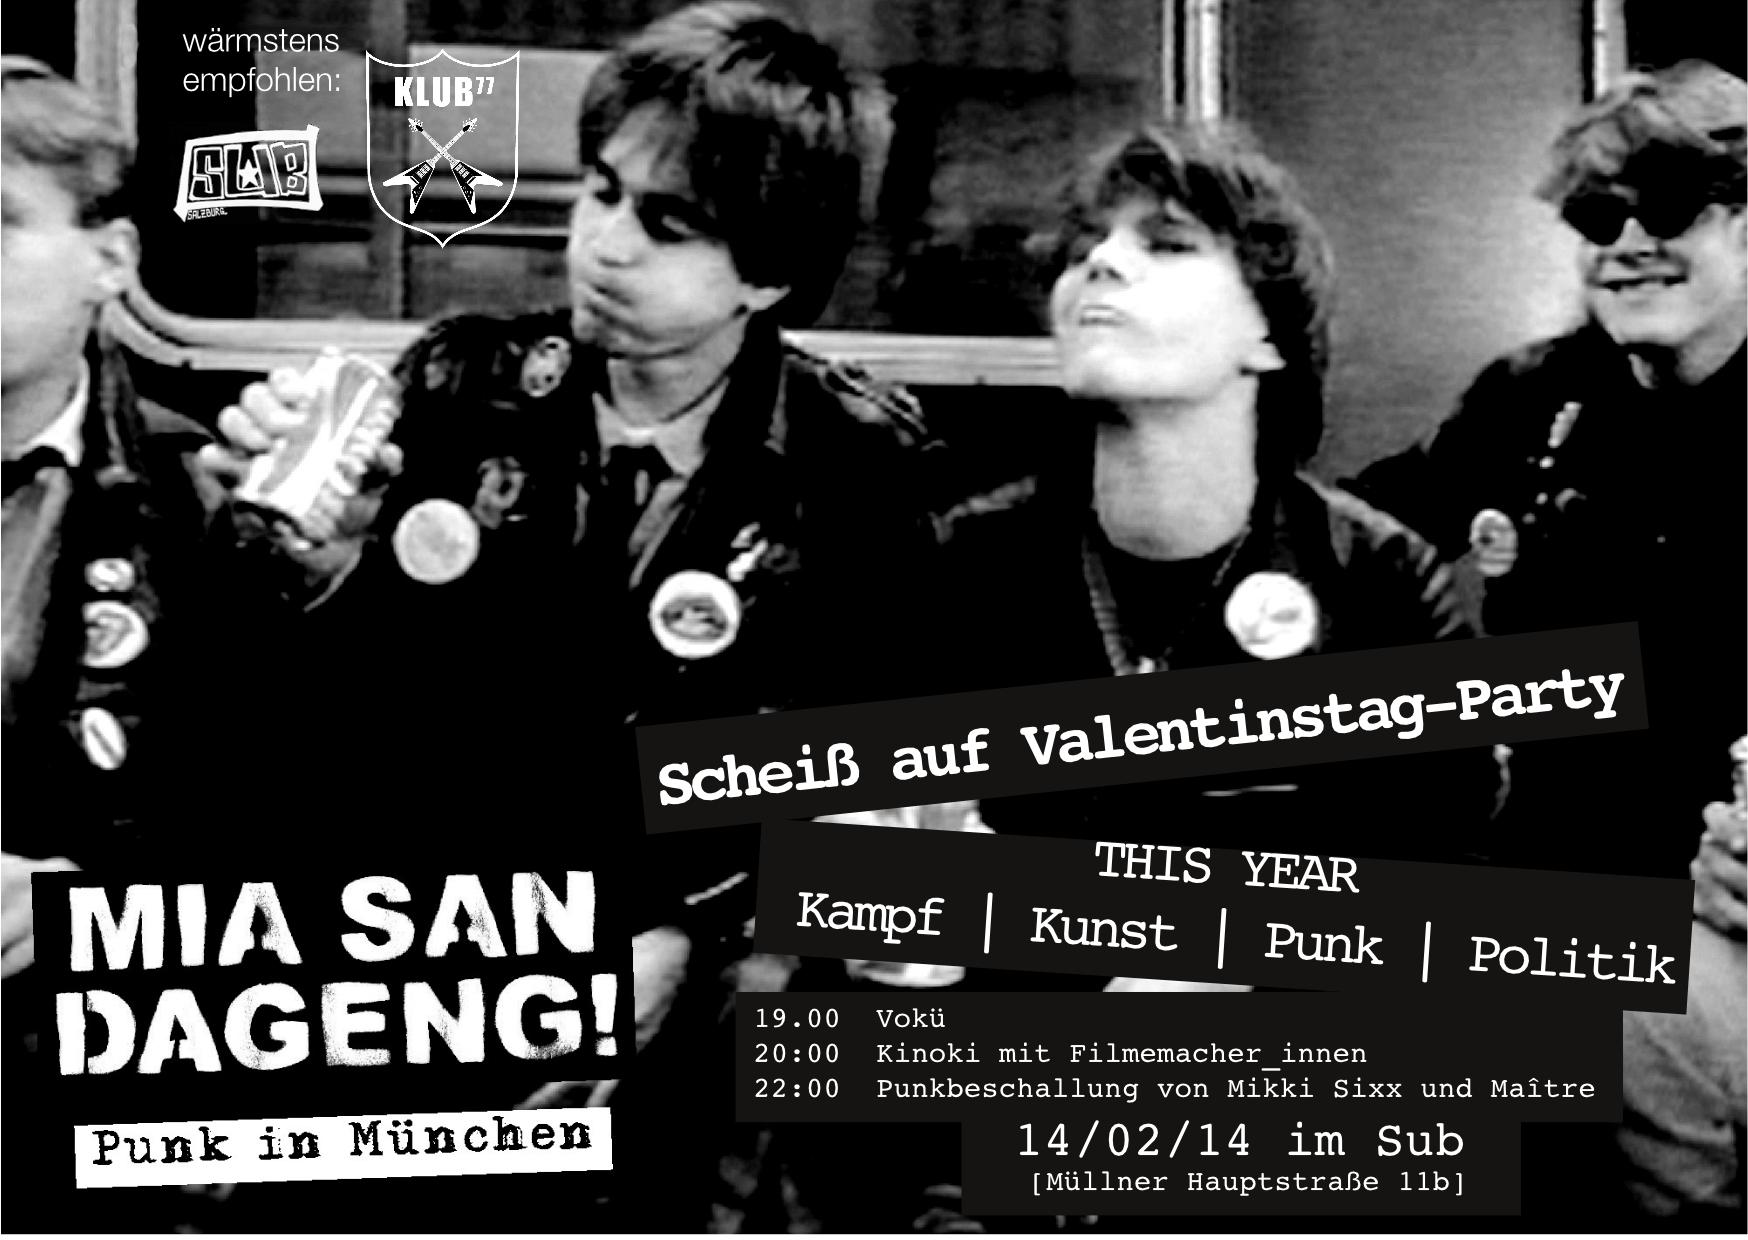 Valentinstag-Party